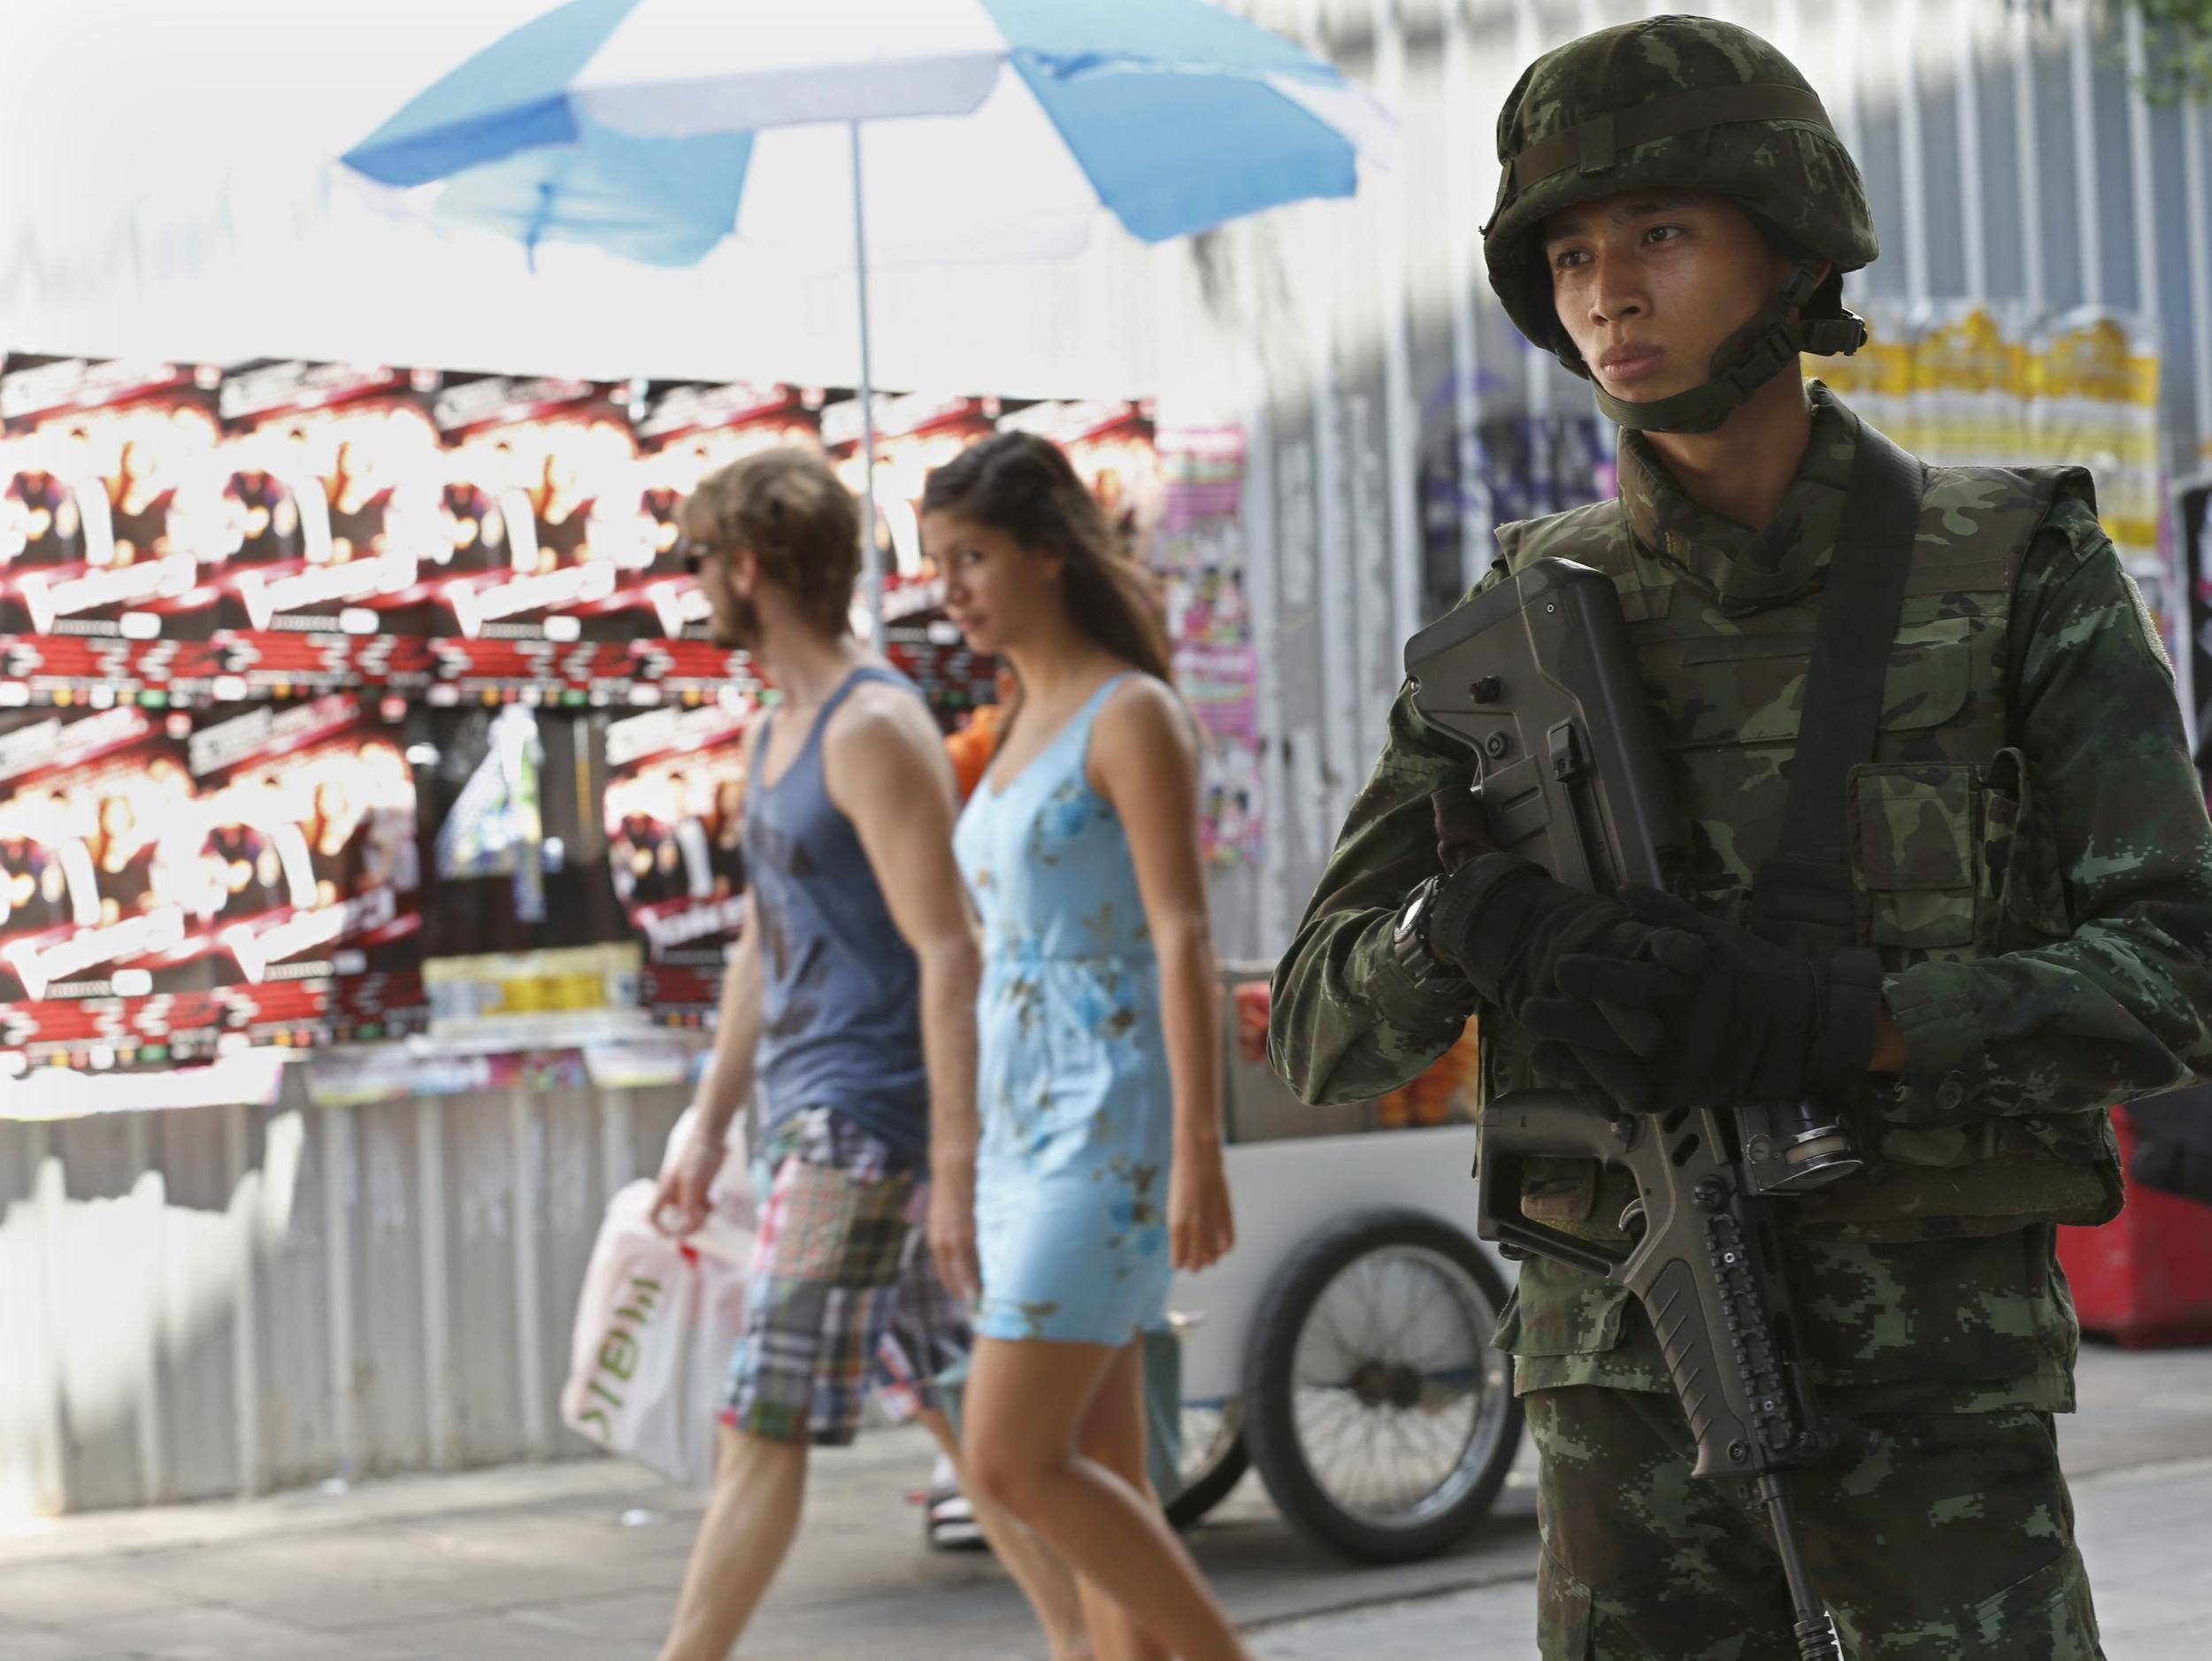 Image: A foreign tourist couple walks behind a Thai soldier guarding in a street in Bangkok, Thailand, May 21.